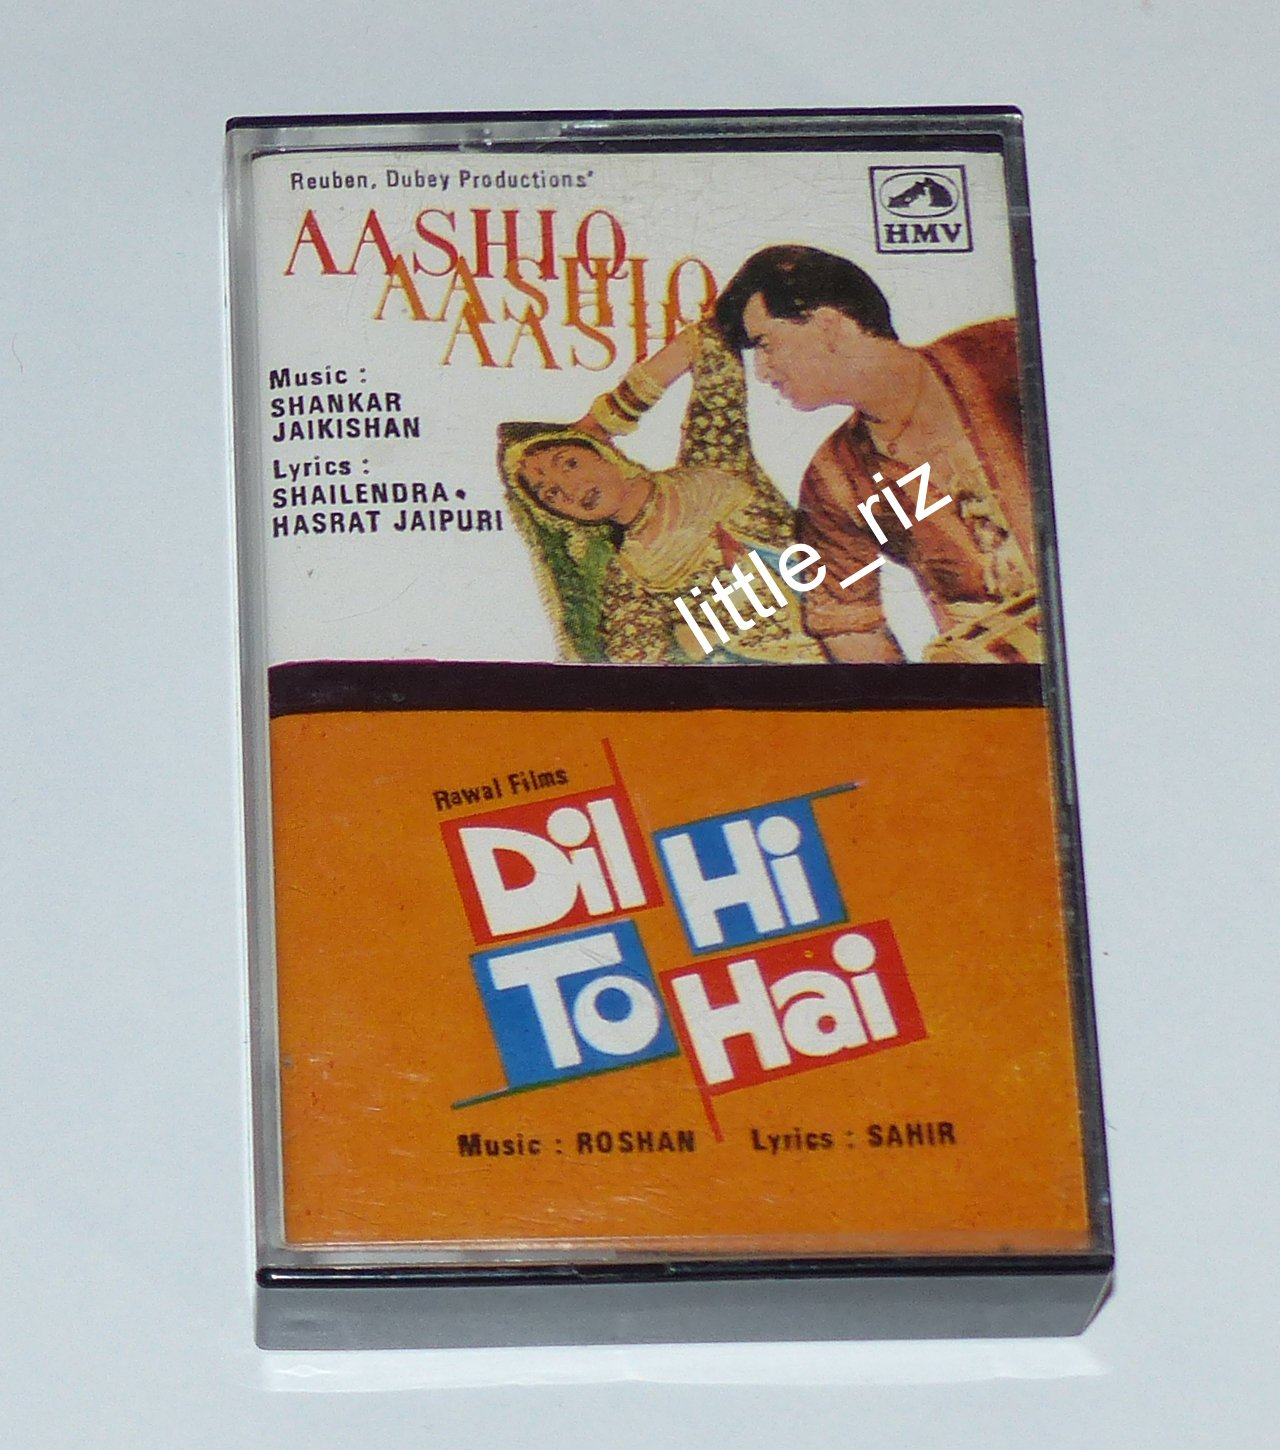 Aashiq (1962) / Dil Hi To Hai (1963) � Bollywood Indian Soundtrack Cassette Tape Shankar Jaikishan